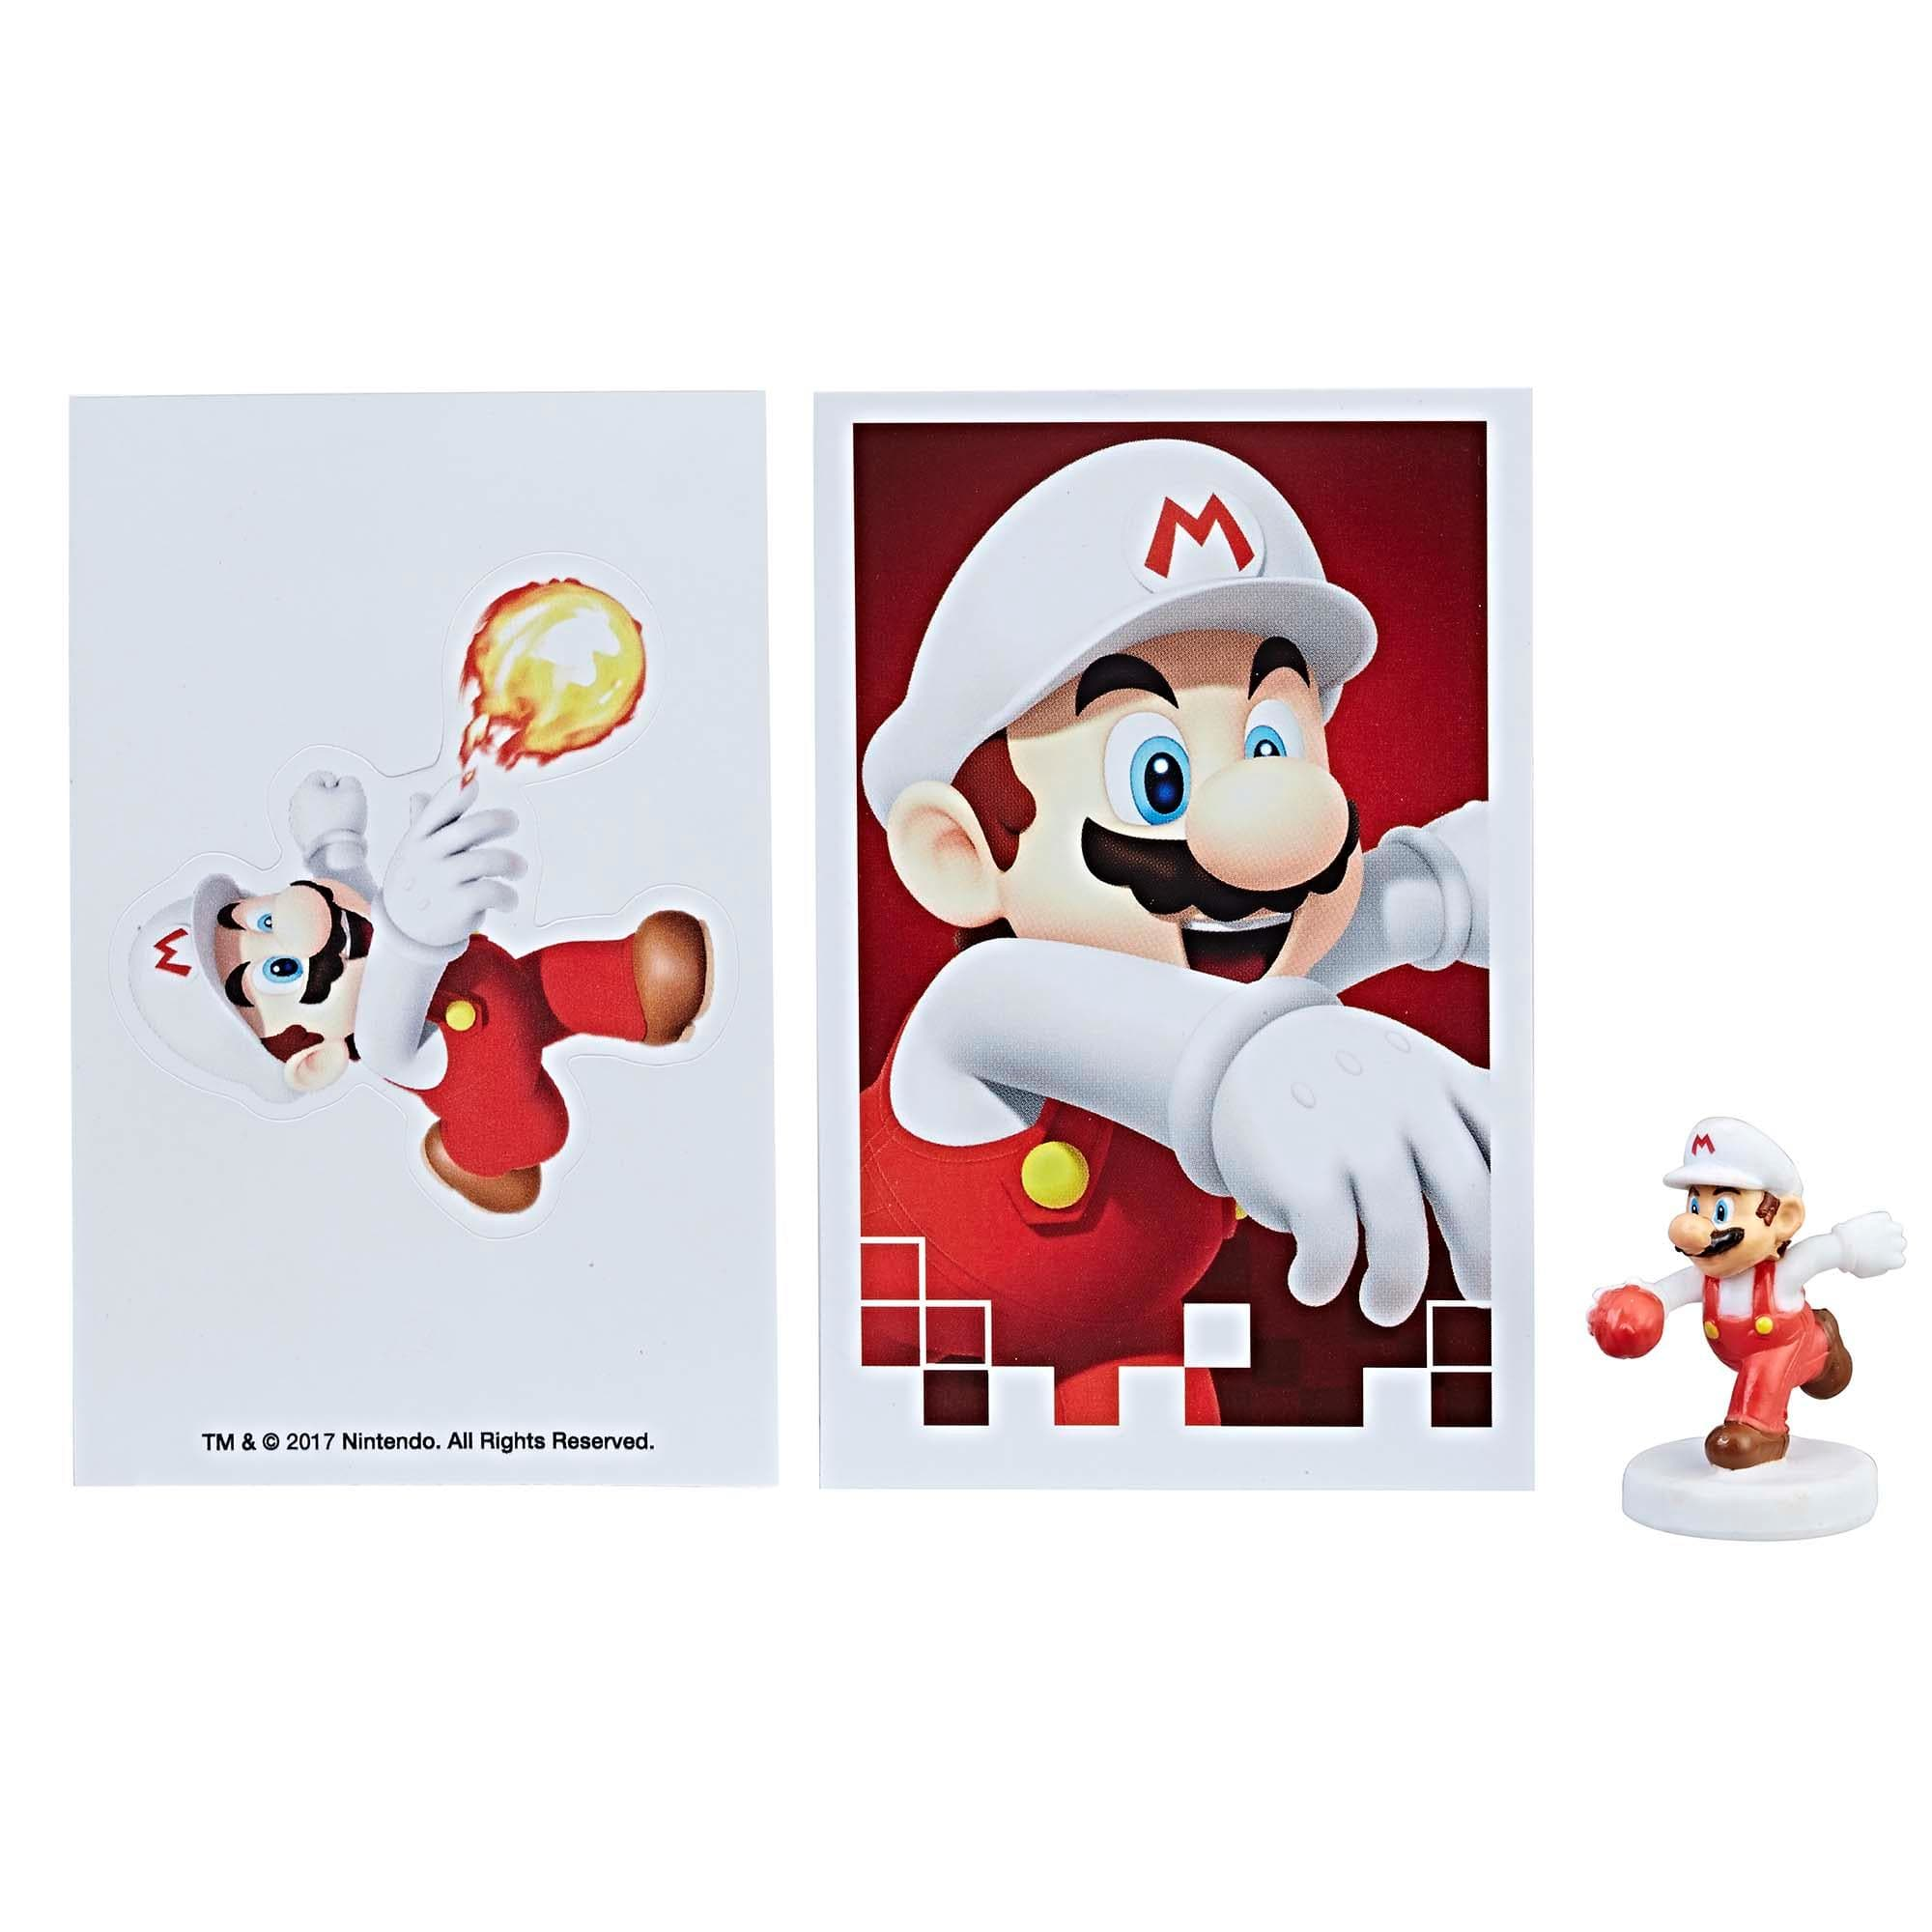 Monopoly Gamer: Power Pack - Fire Mario